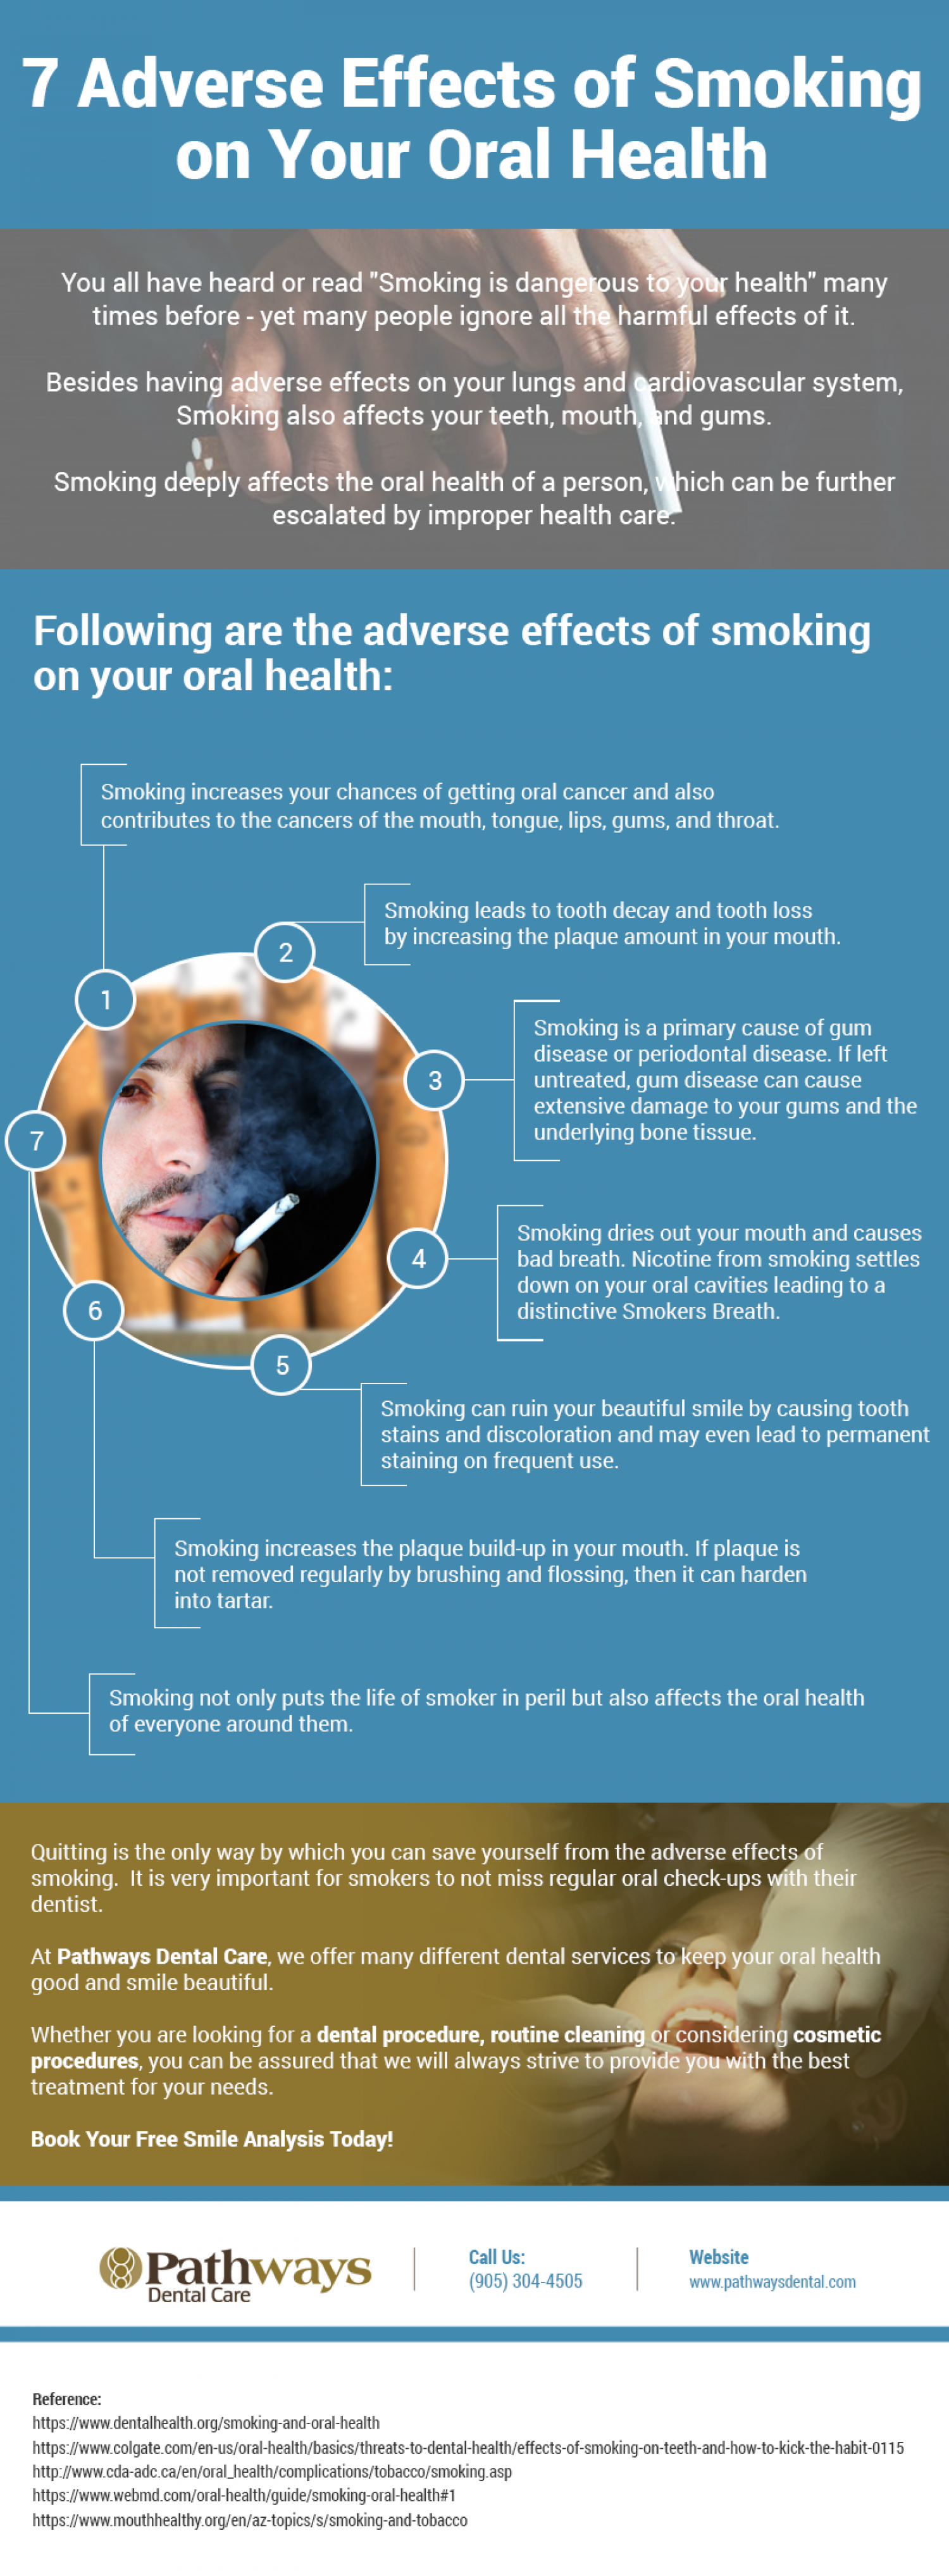 The Effects of Smoking on Your Oral Health Infographic